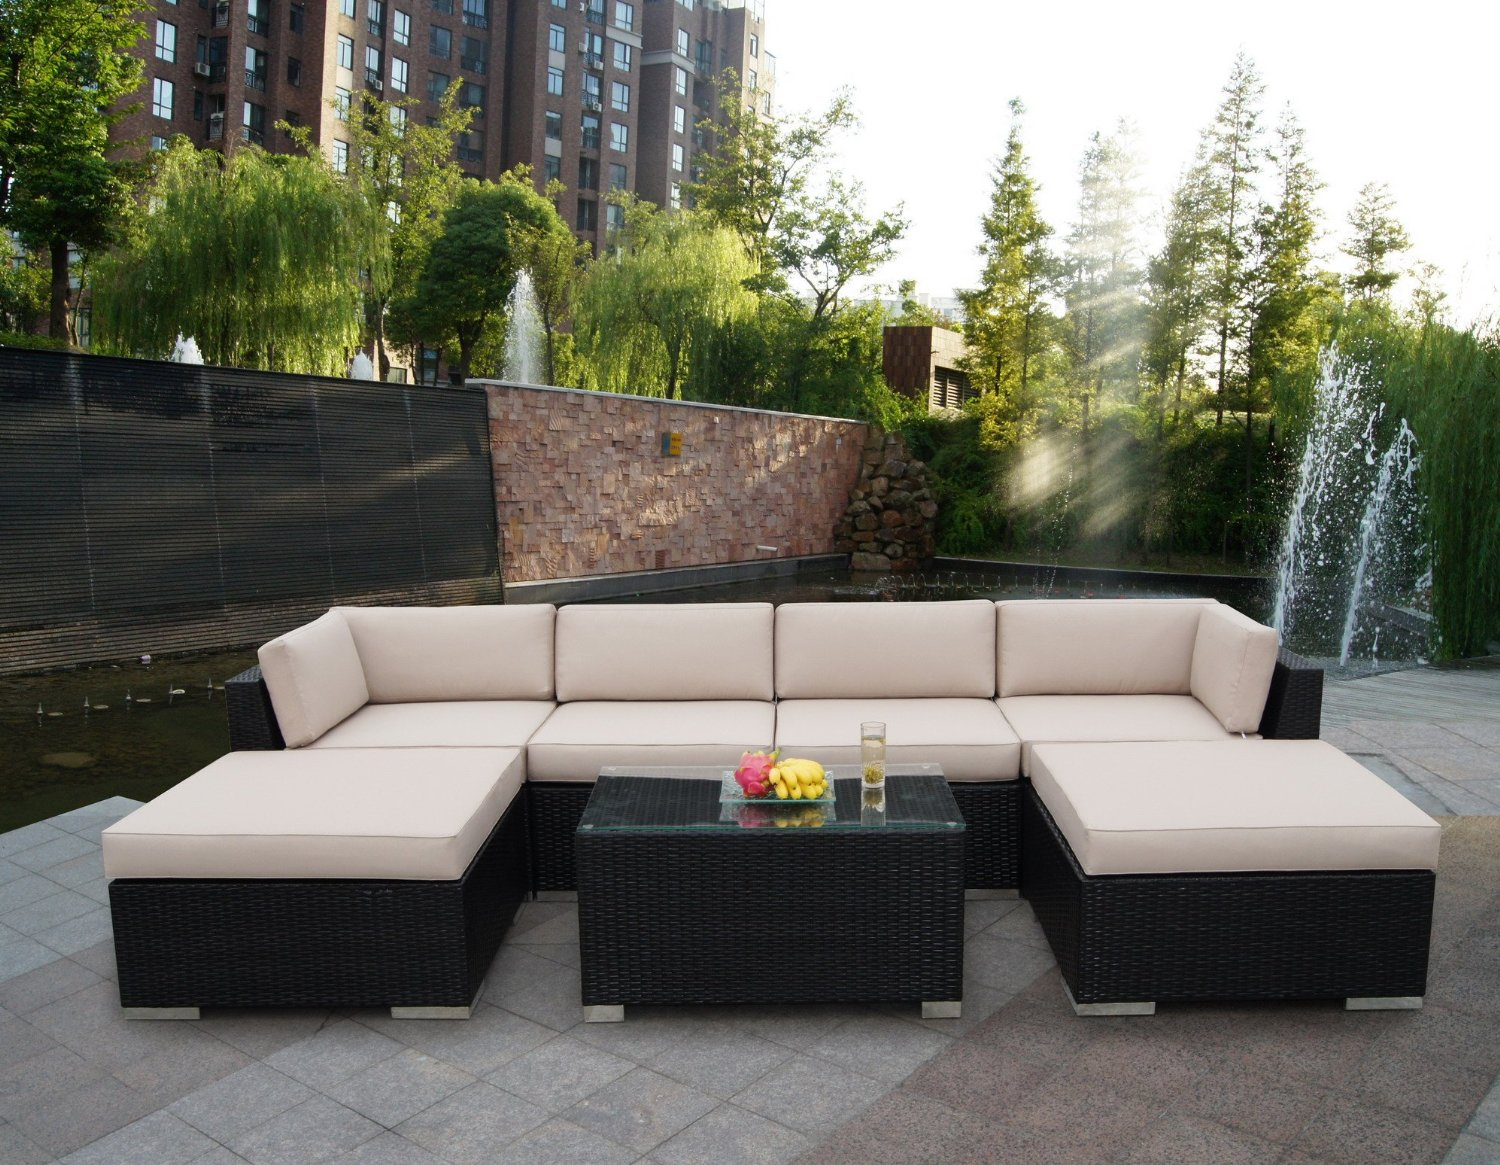 Charming Epic Outdoor Patio Couch 75 For Modern Sofa Inspiration With Outdoor Patio  Couch